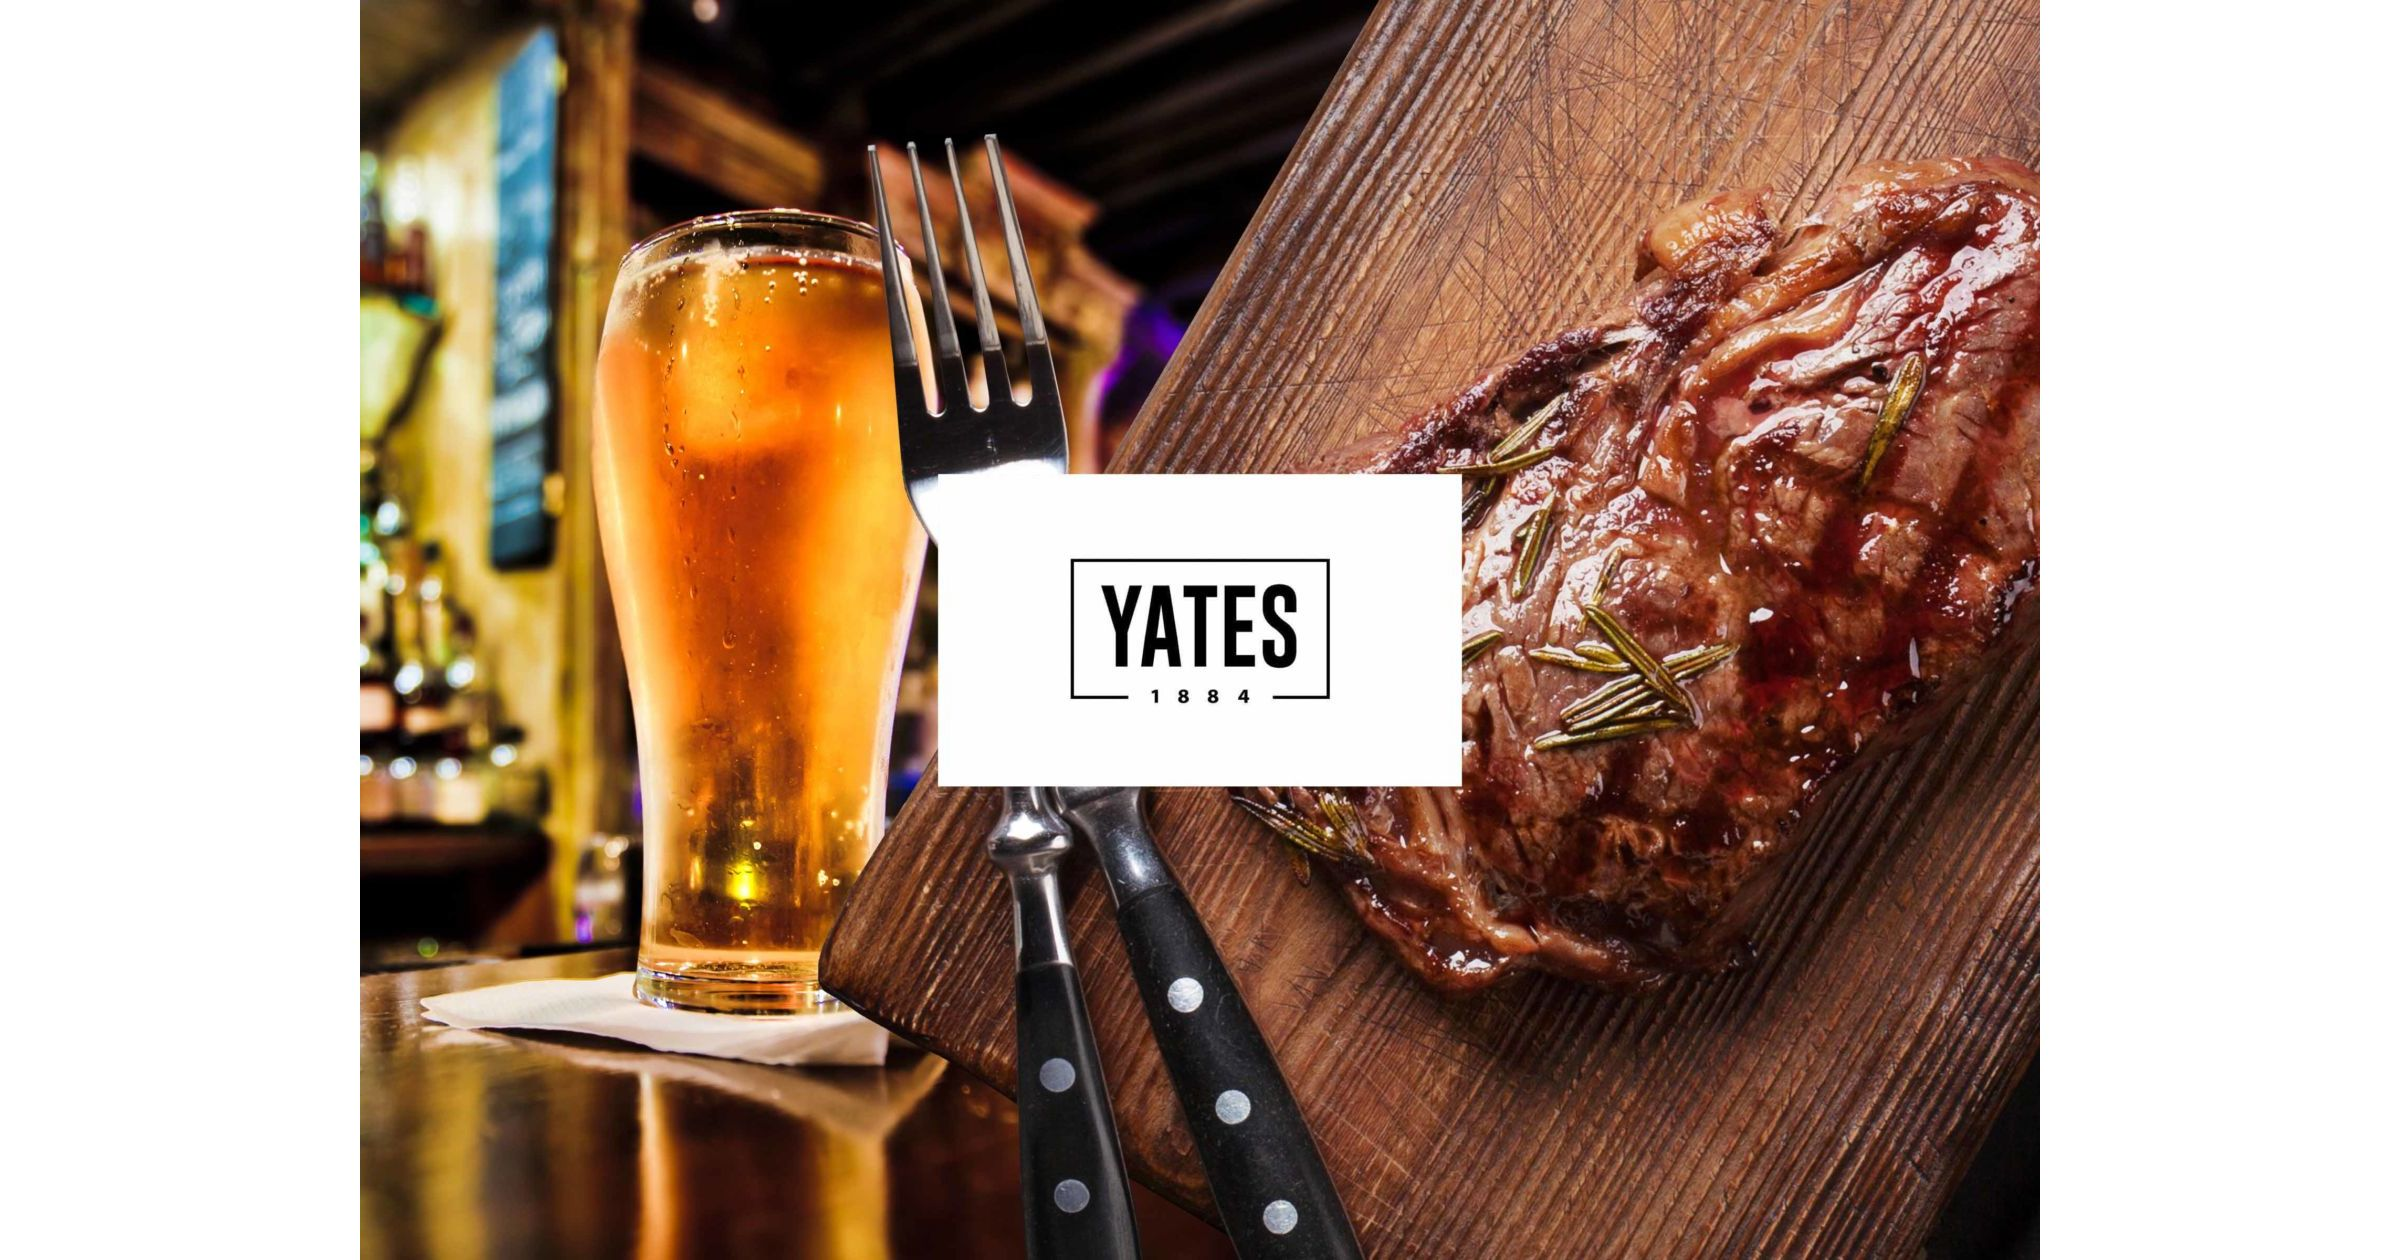 Yates - Steak & Beer